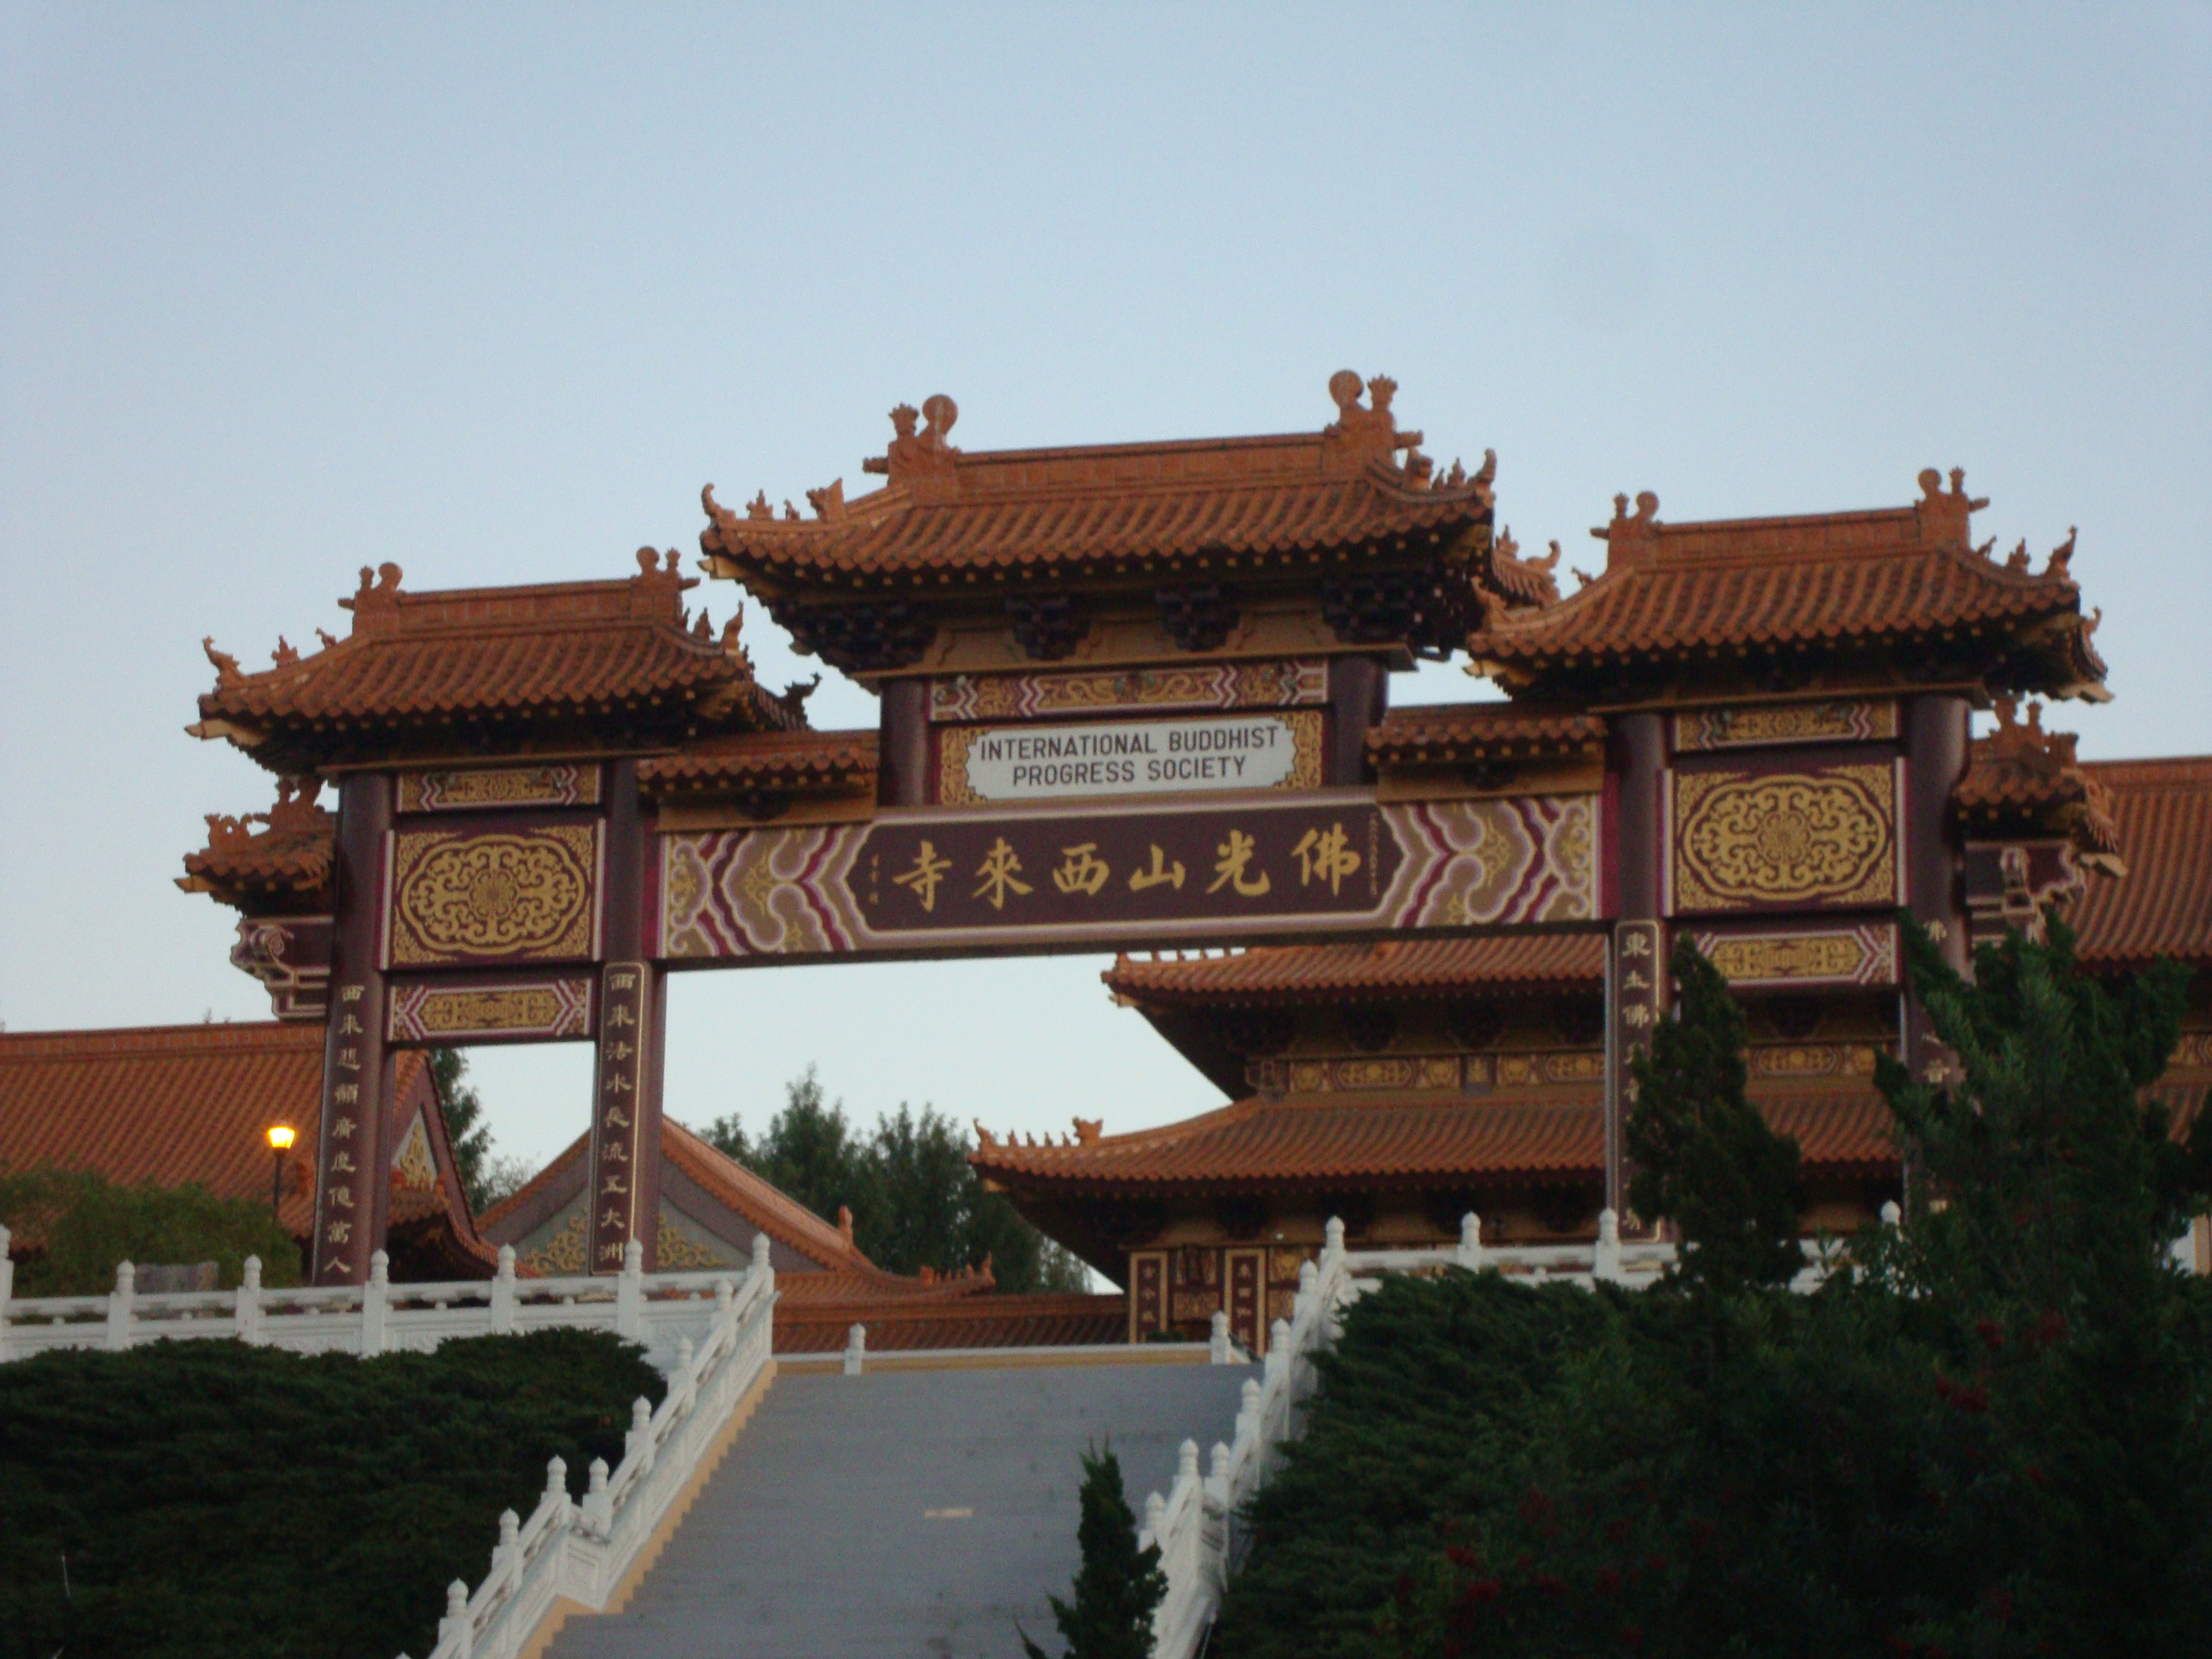 The mountain gate of Hsi Lai Temple